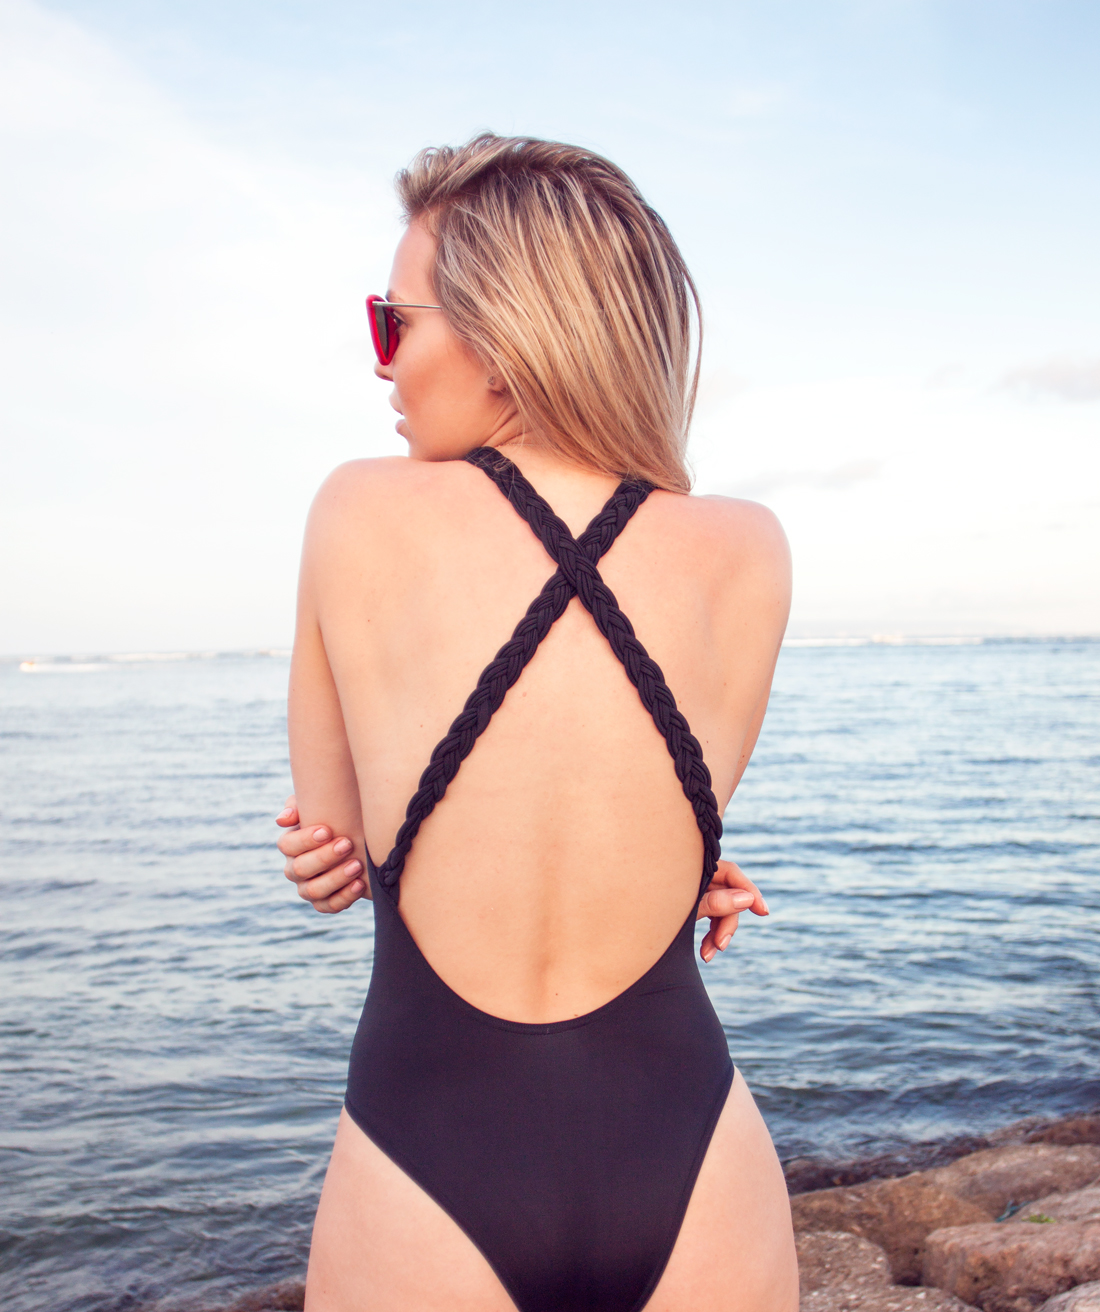 nusa dua bali, nusa dua beach, braided back bathingsuit, asos bathingsuit, asos swimsuit, black swimsuit, low bask swimsuit, cherryblossomstreet, bali vacation, bali beach, fit girl, workout blog, fit blog, träningsblogg, dogeared jewellery, red velvet ray bans